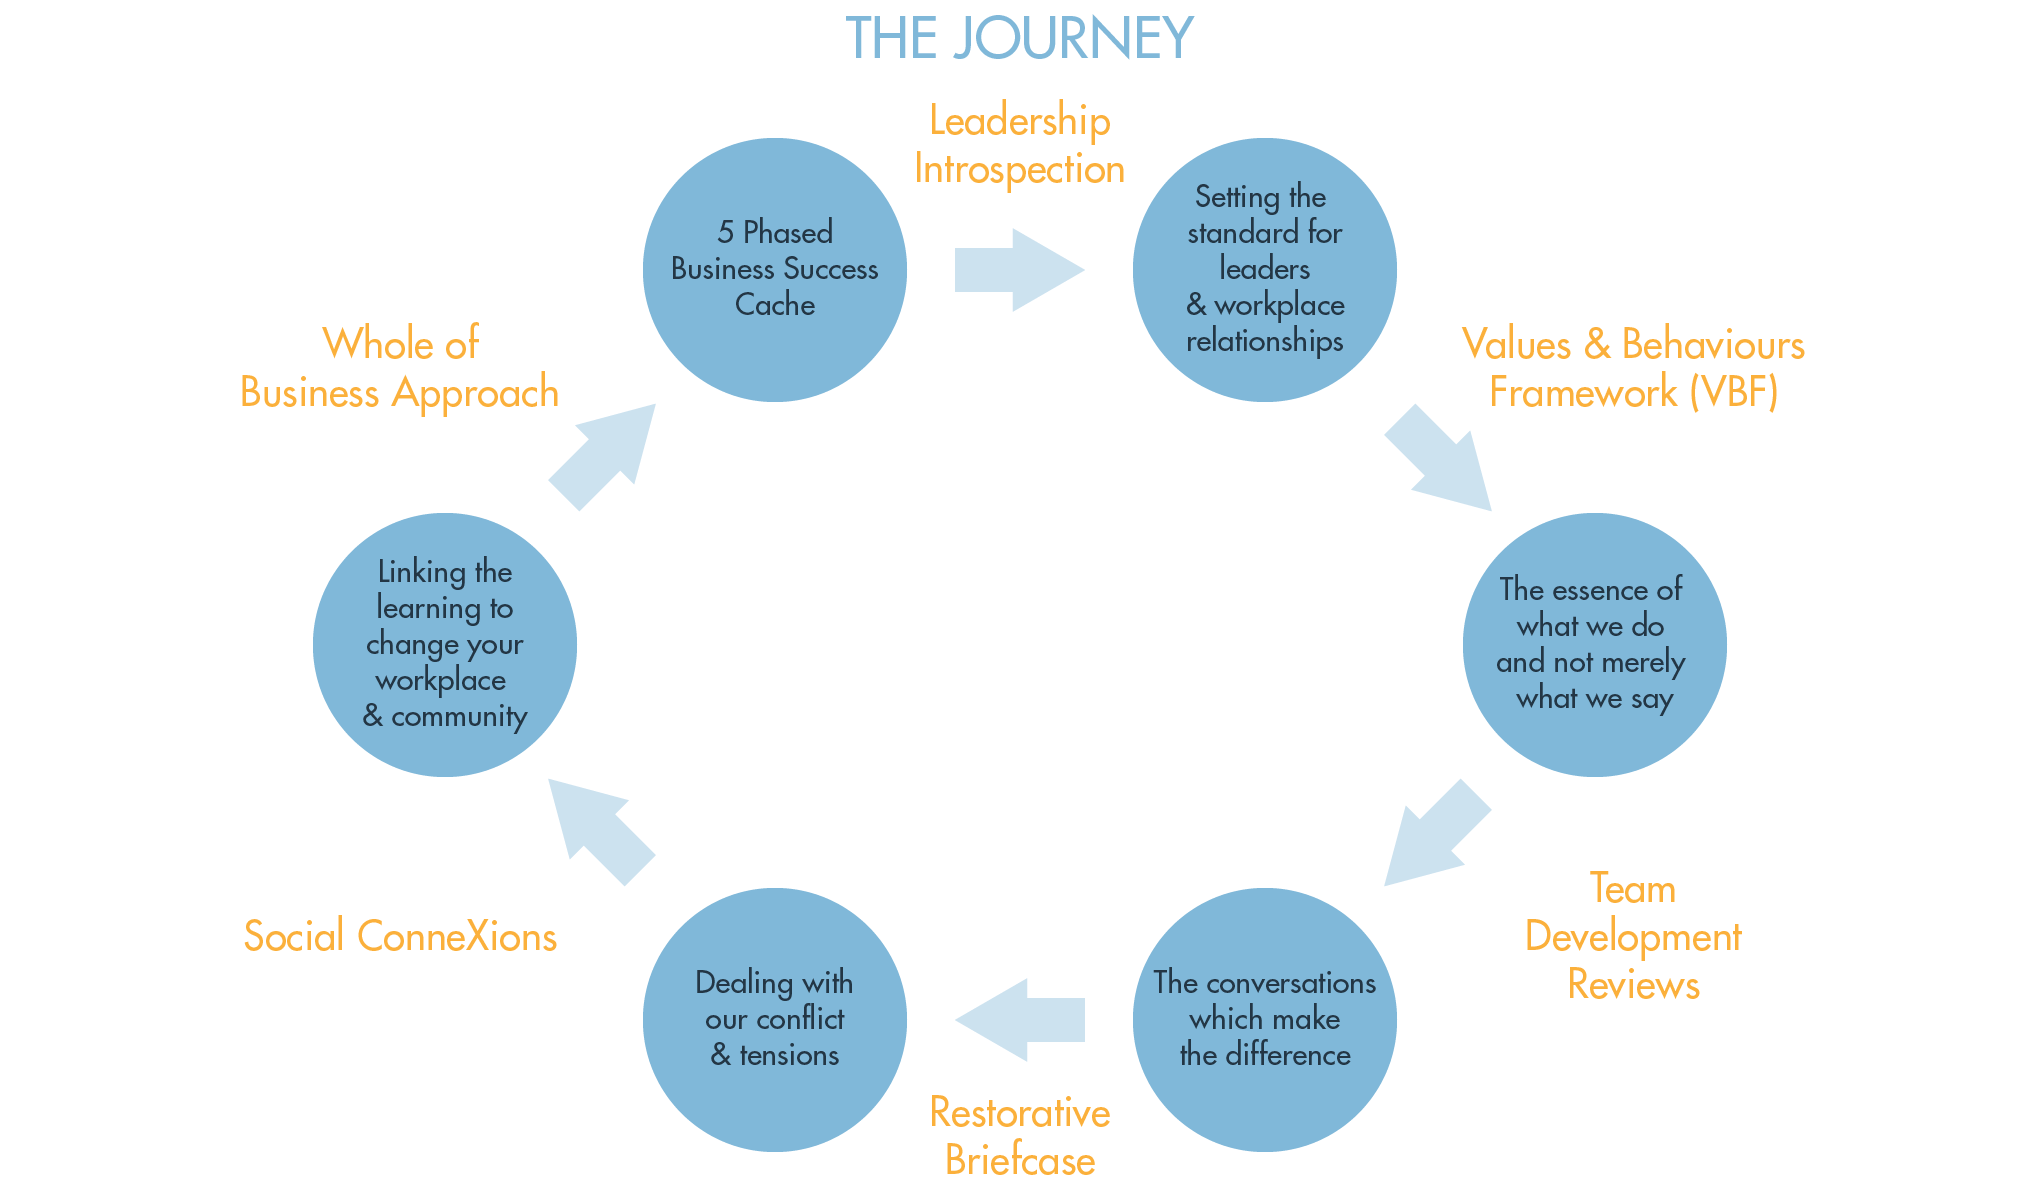 Journey@2x.png